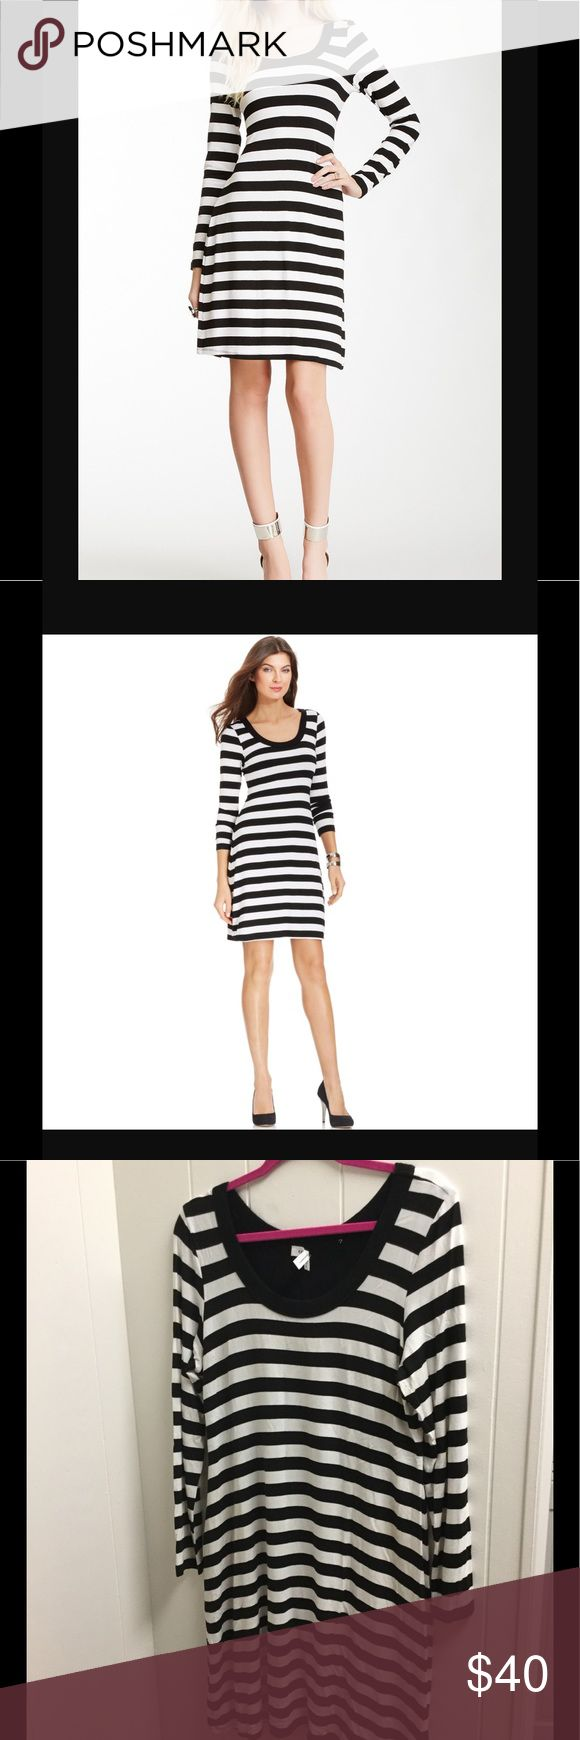 Karen Kane Xl striped dress/tunic. This fabulous stylish dress/tunic is size Xl. Karen by Karen Kane black and white striped. There is some pilling under the arms as shown in pic. Karen Kane Dresses Long Sleeve